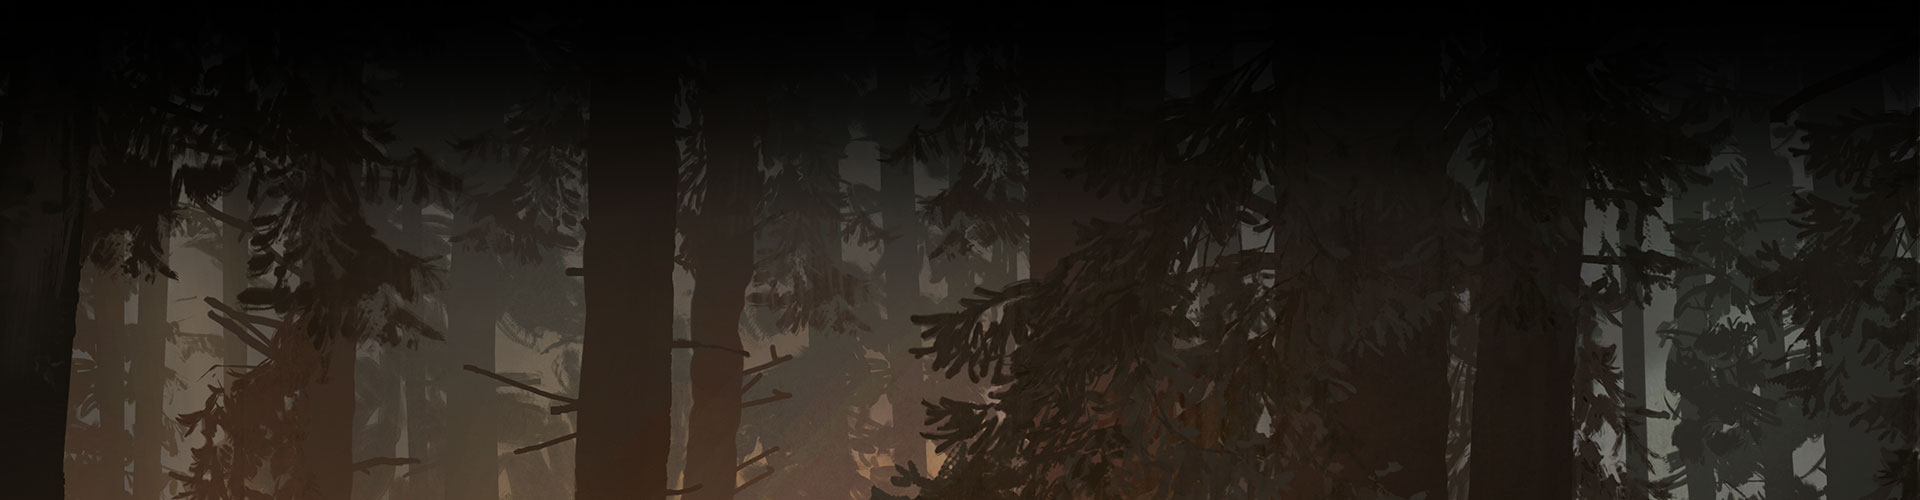 Background of shadowy trees in a forest